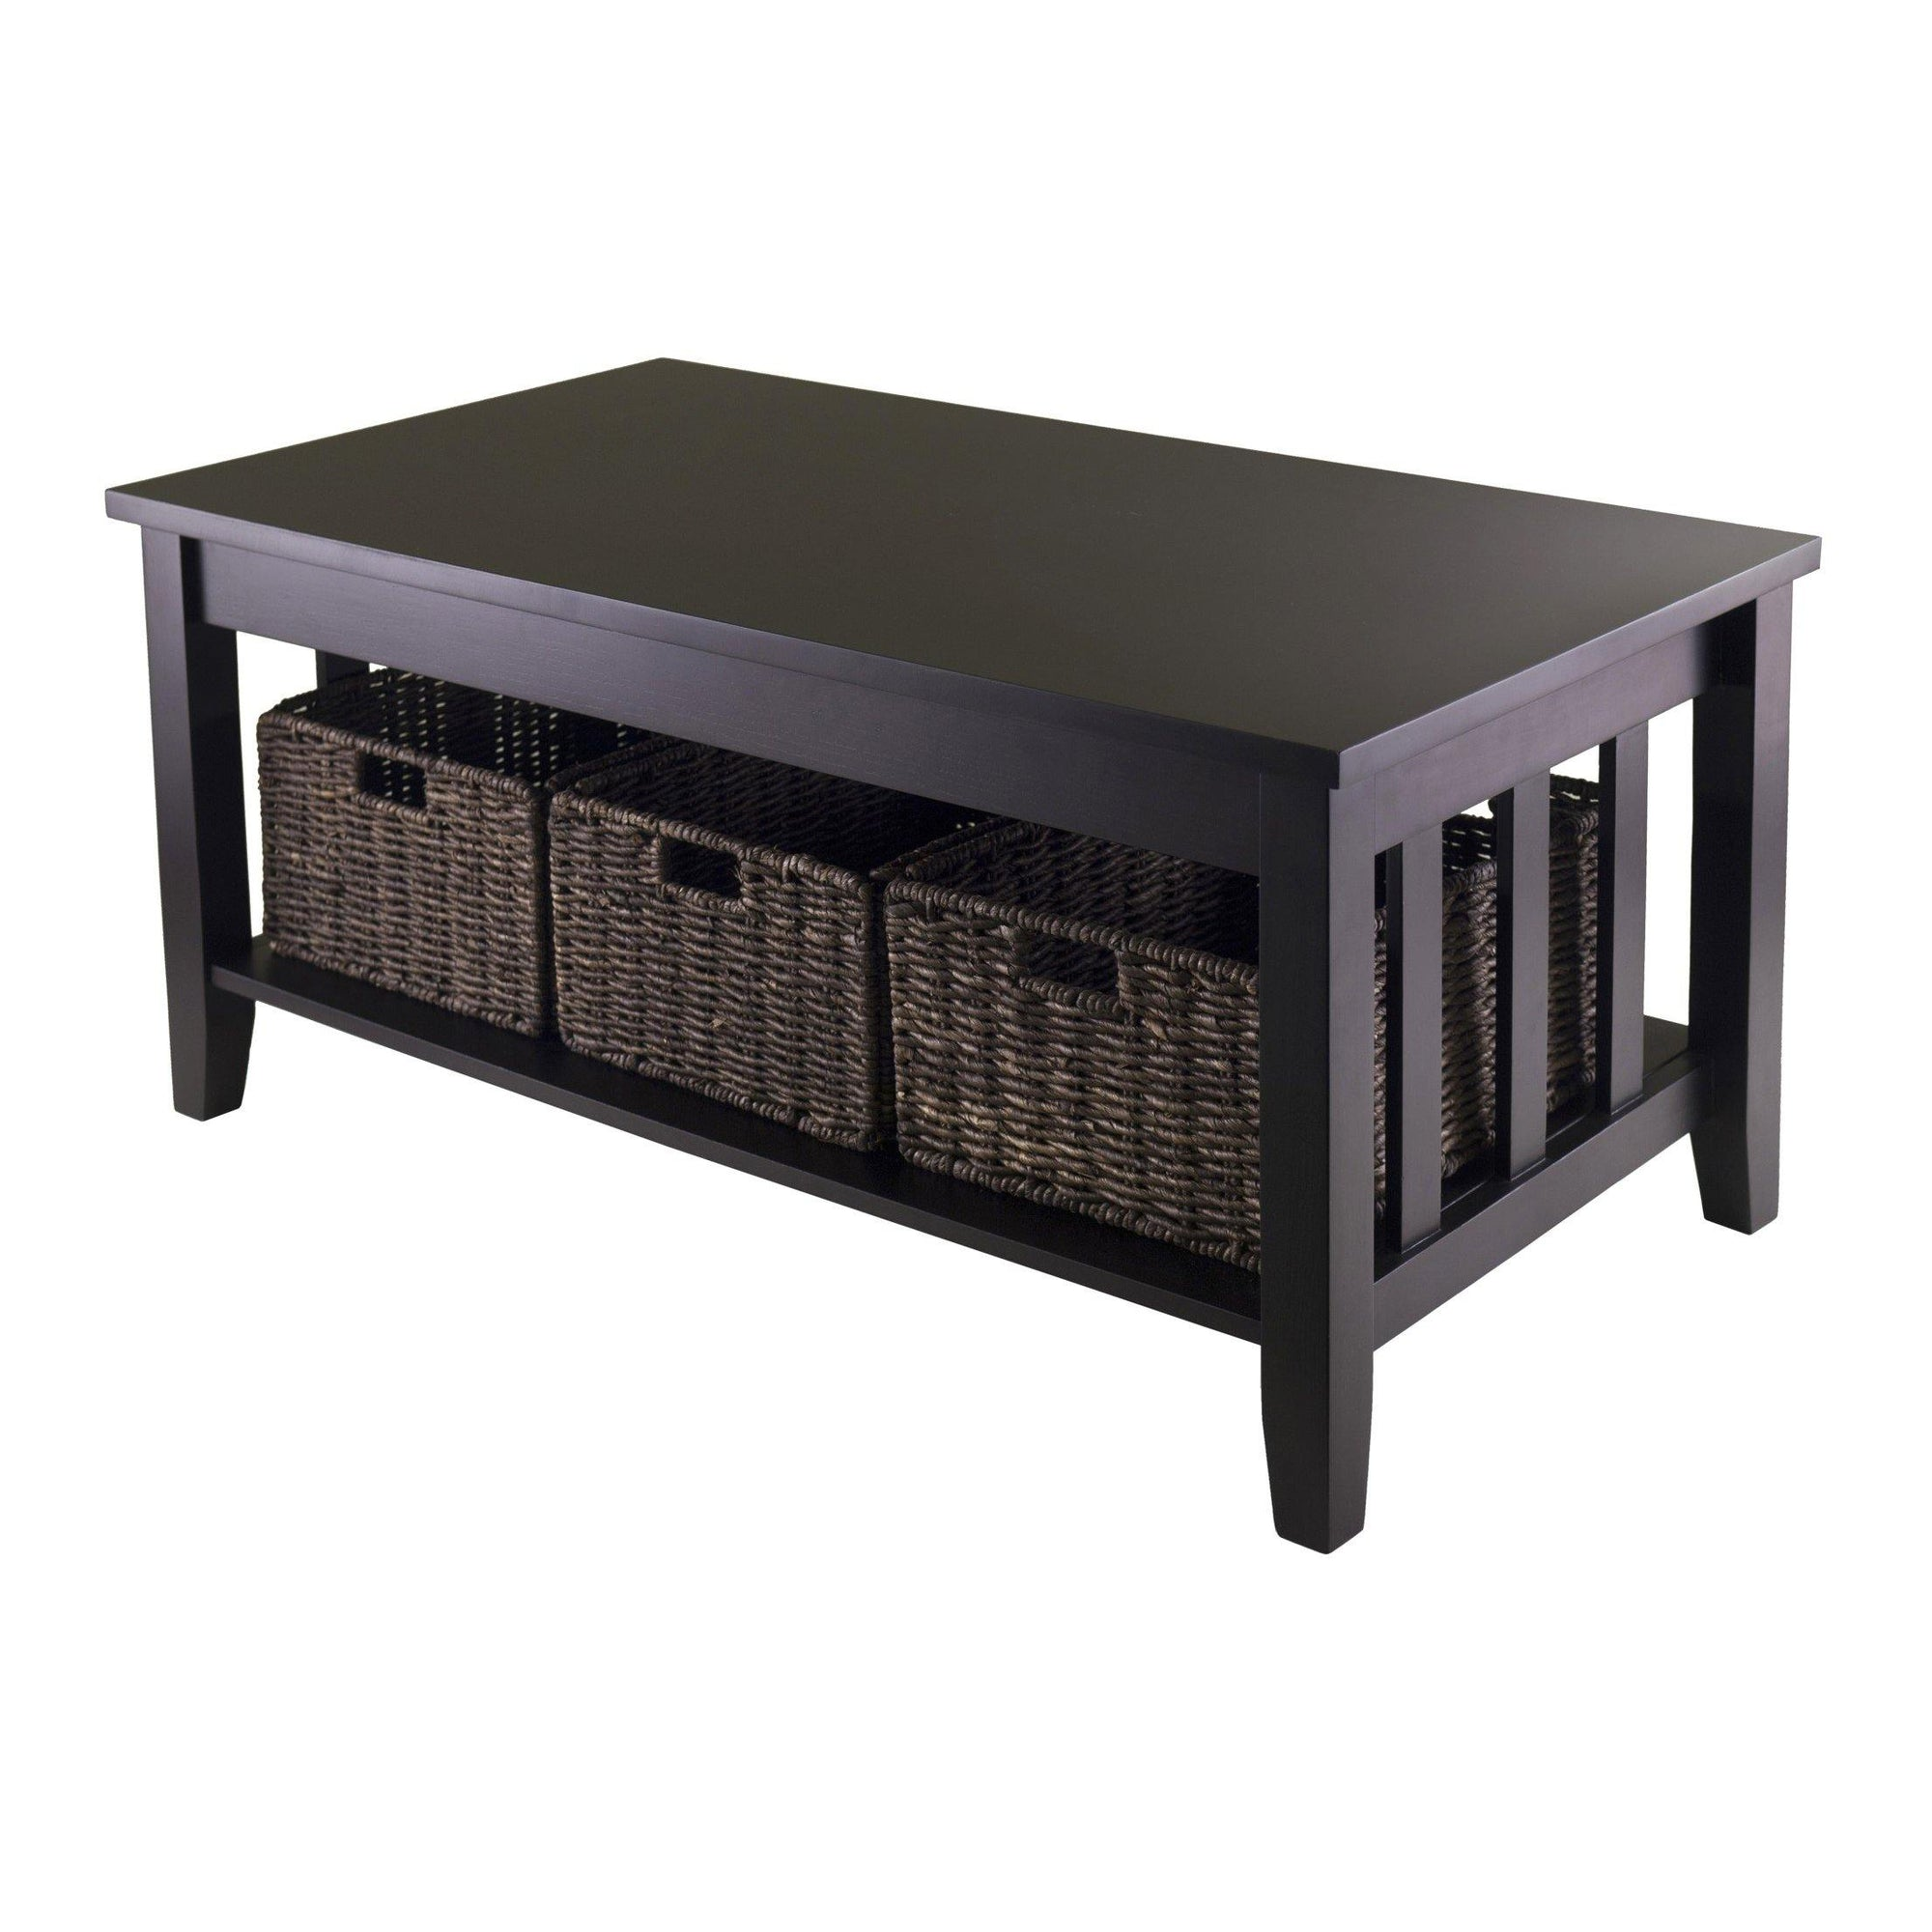 Morris Coffee Table with 3 Foldable Baskets - My USA Furniture